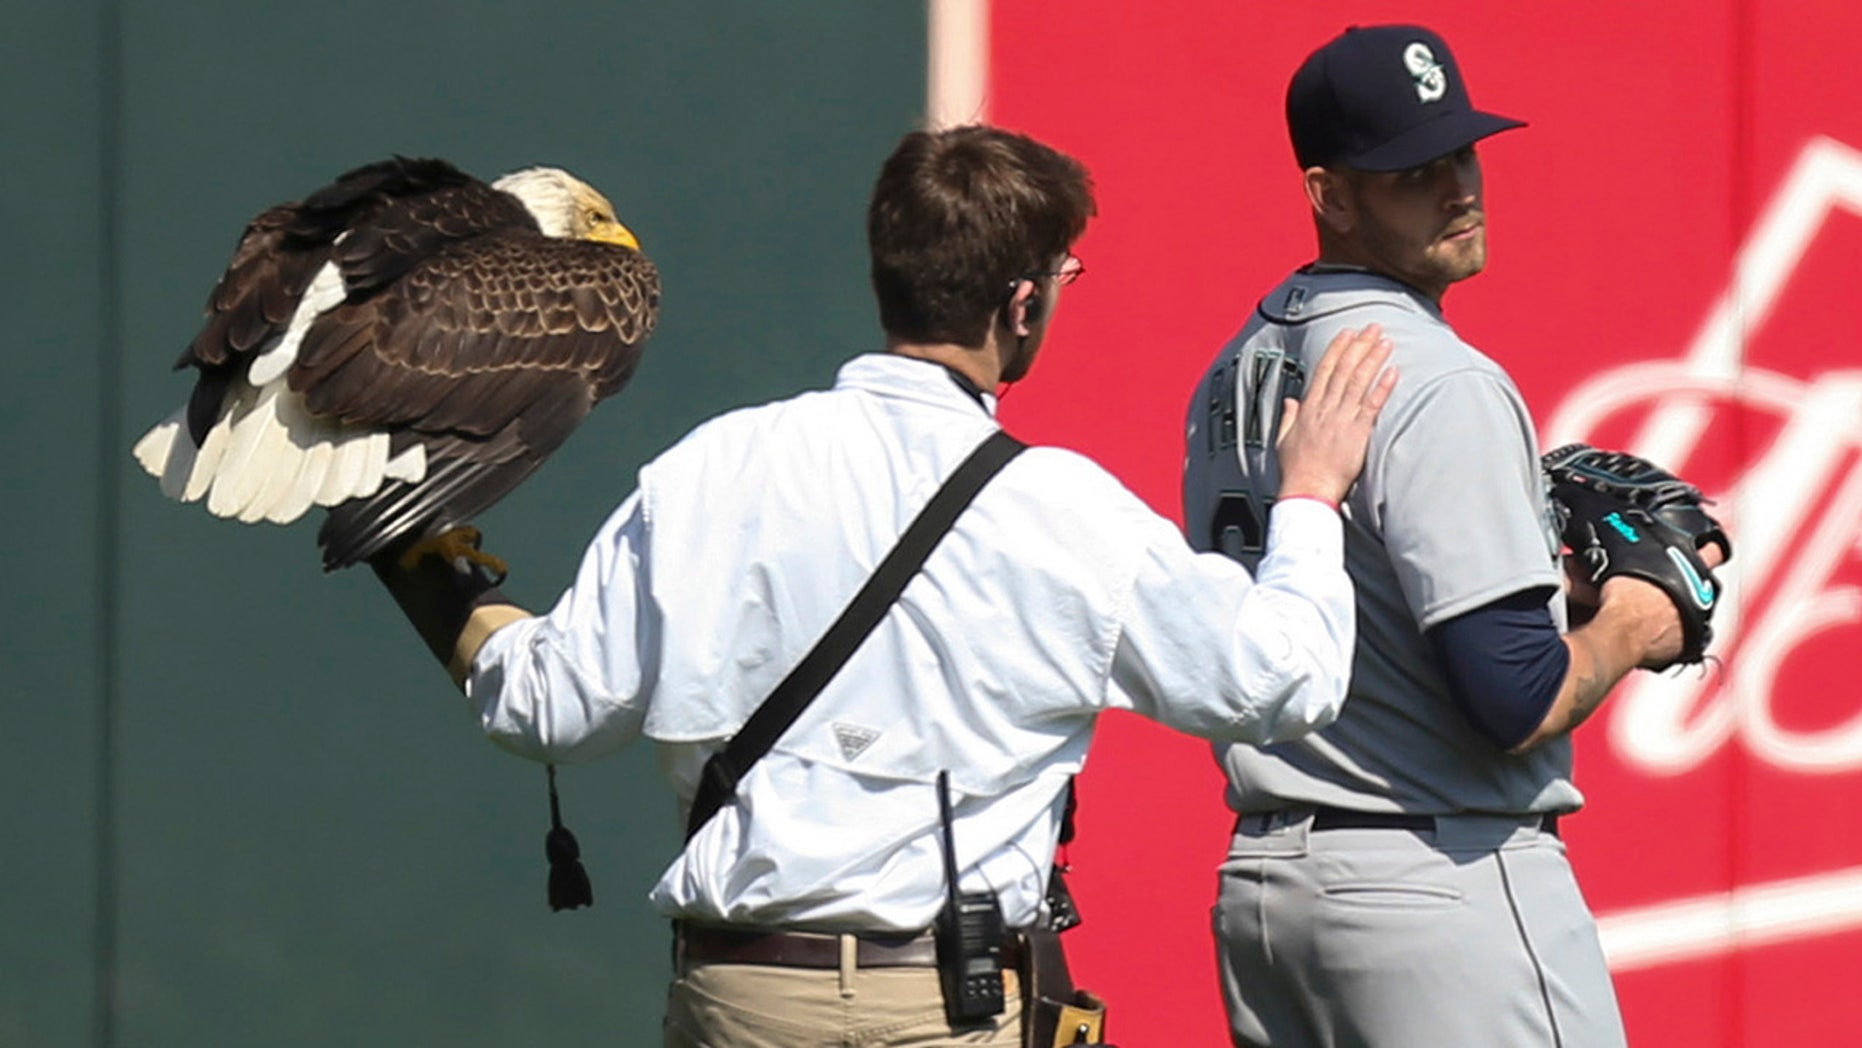 The handler for an American eagle that was to fly to the pitcher's mound during the national anthem pats Seattle Mariners starting pitcher James Paxton, a Canadian, after the eagle chose to land on his shoulder instead.